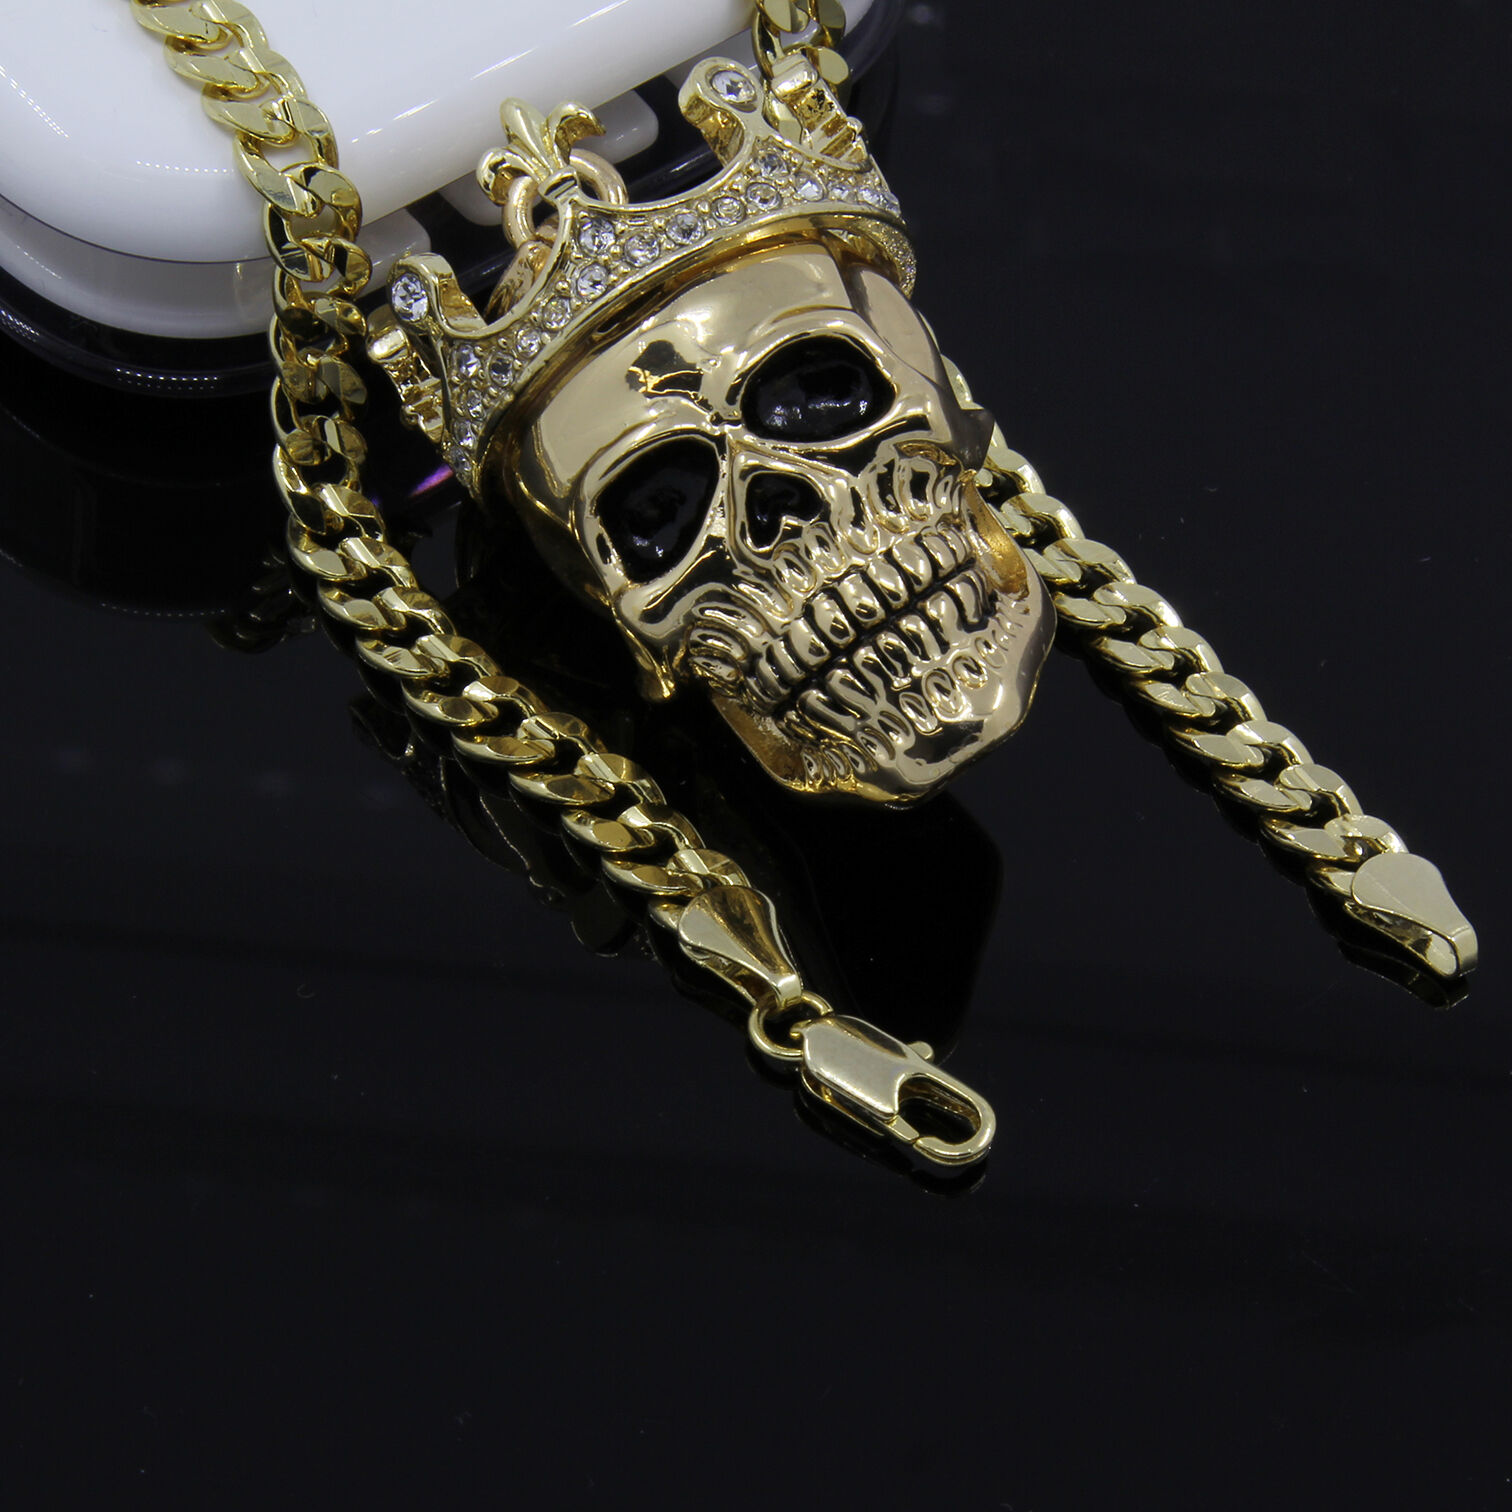 pendant shop london vampire glf kasun skull necklaces